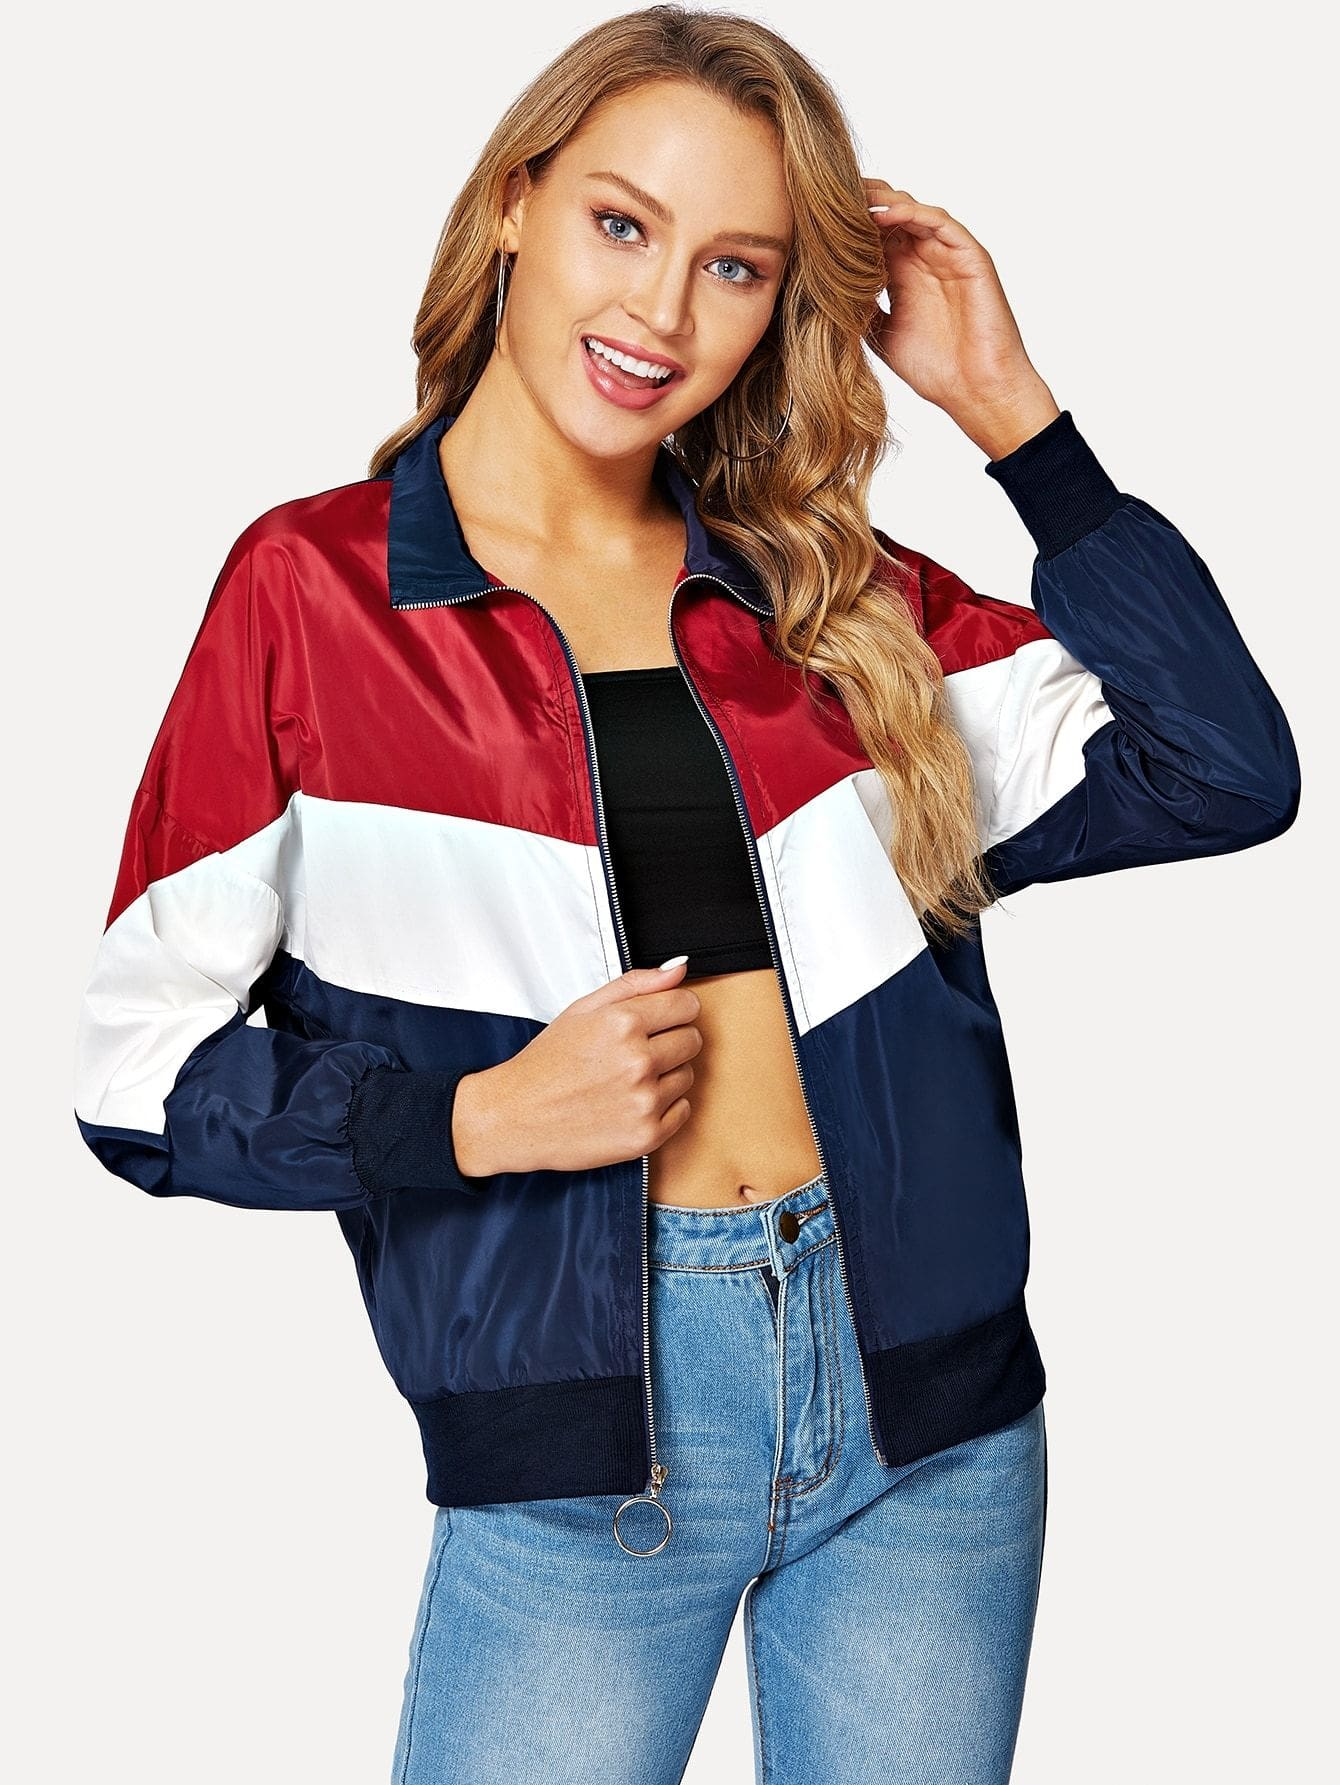 Cut-And-Sew Chevron Windbreaker Jacket - Gym Tops